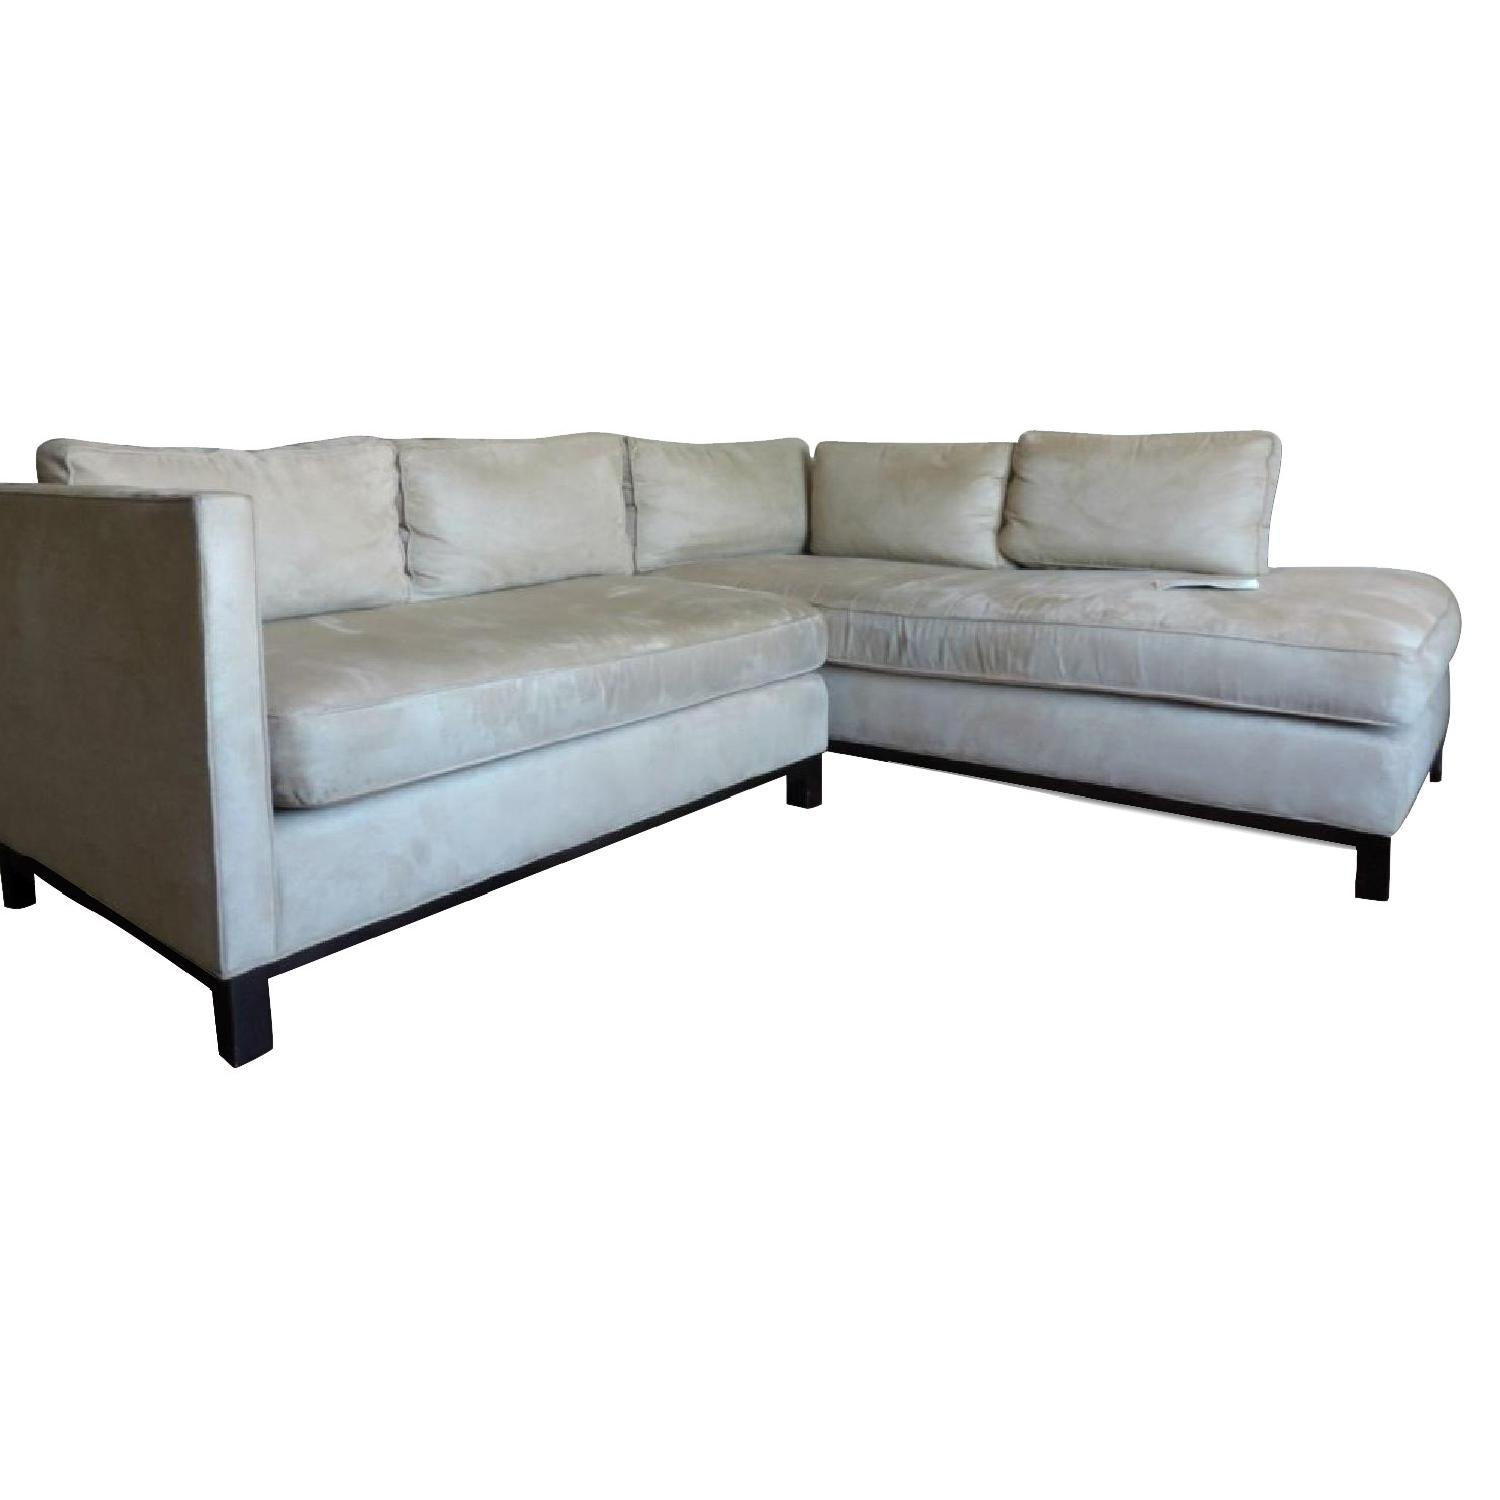 gold sectional sofa chaise grey mitchell 43 bob williams clifton collection aptdeco